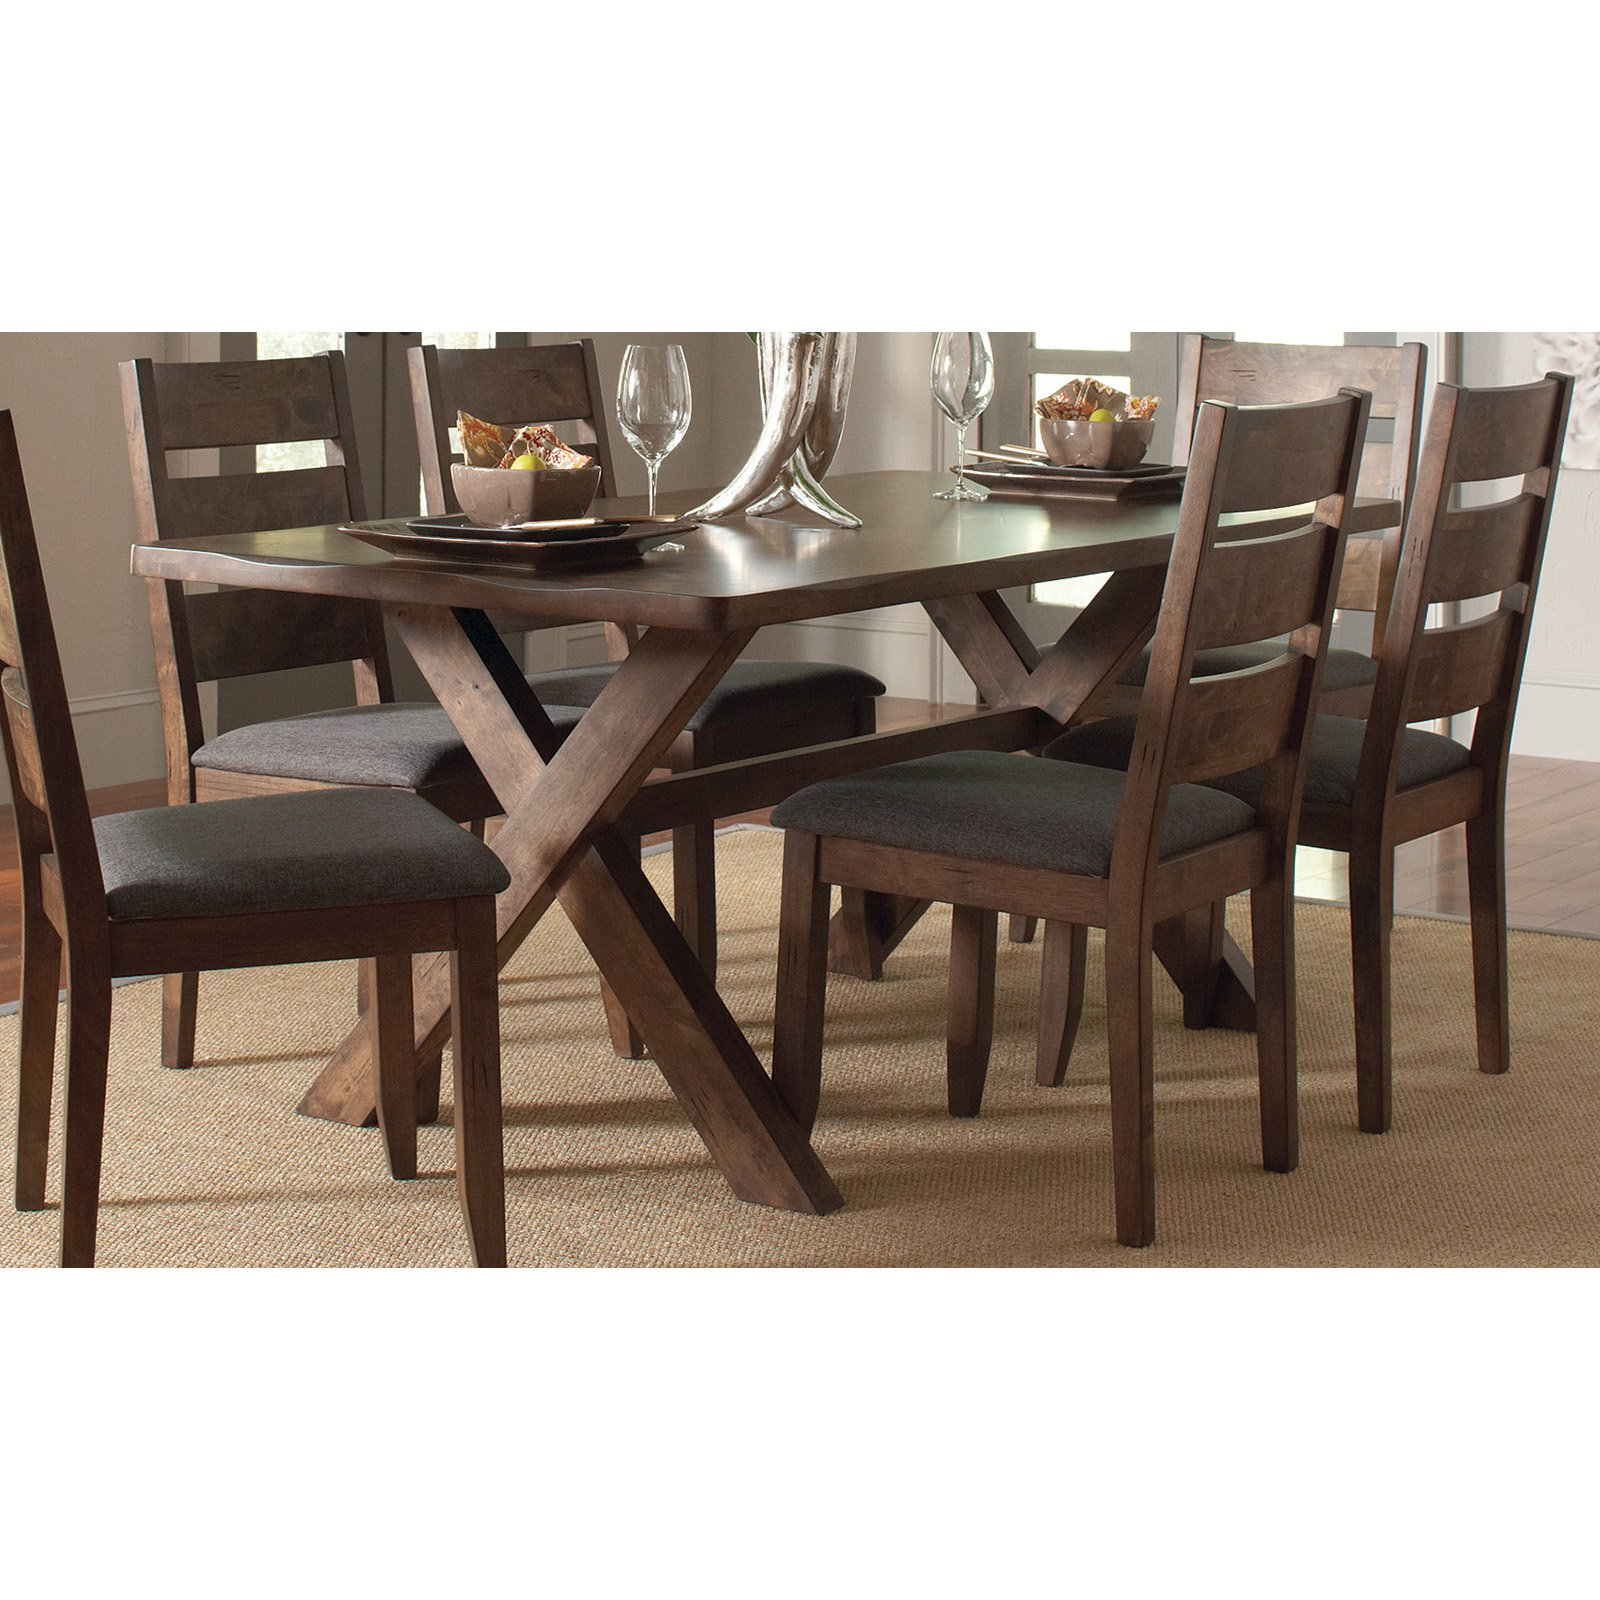 Coaster Furniture Alston Dining Table